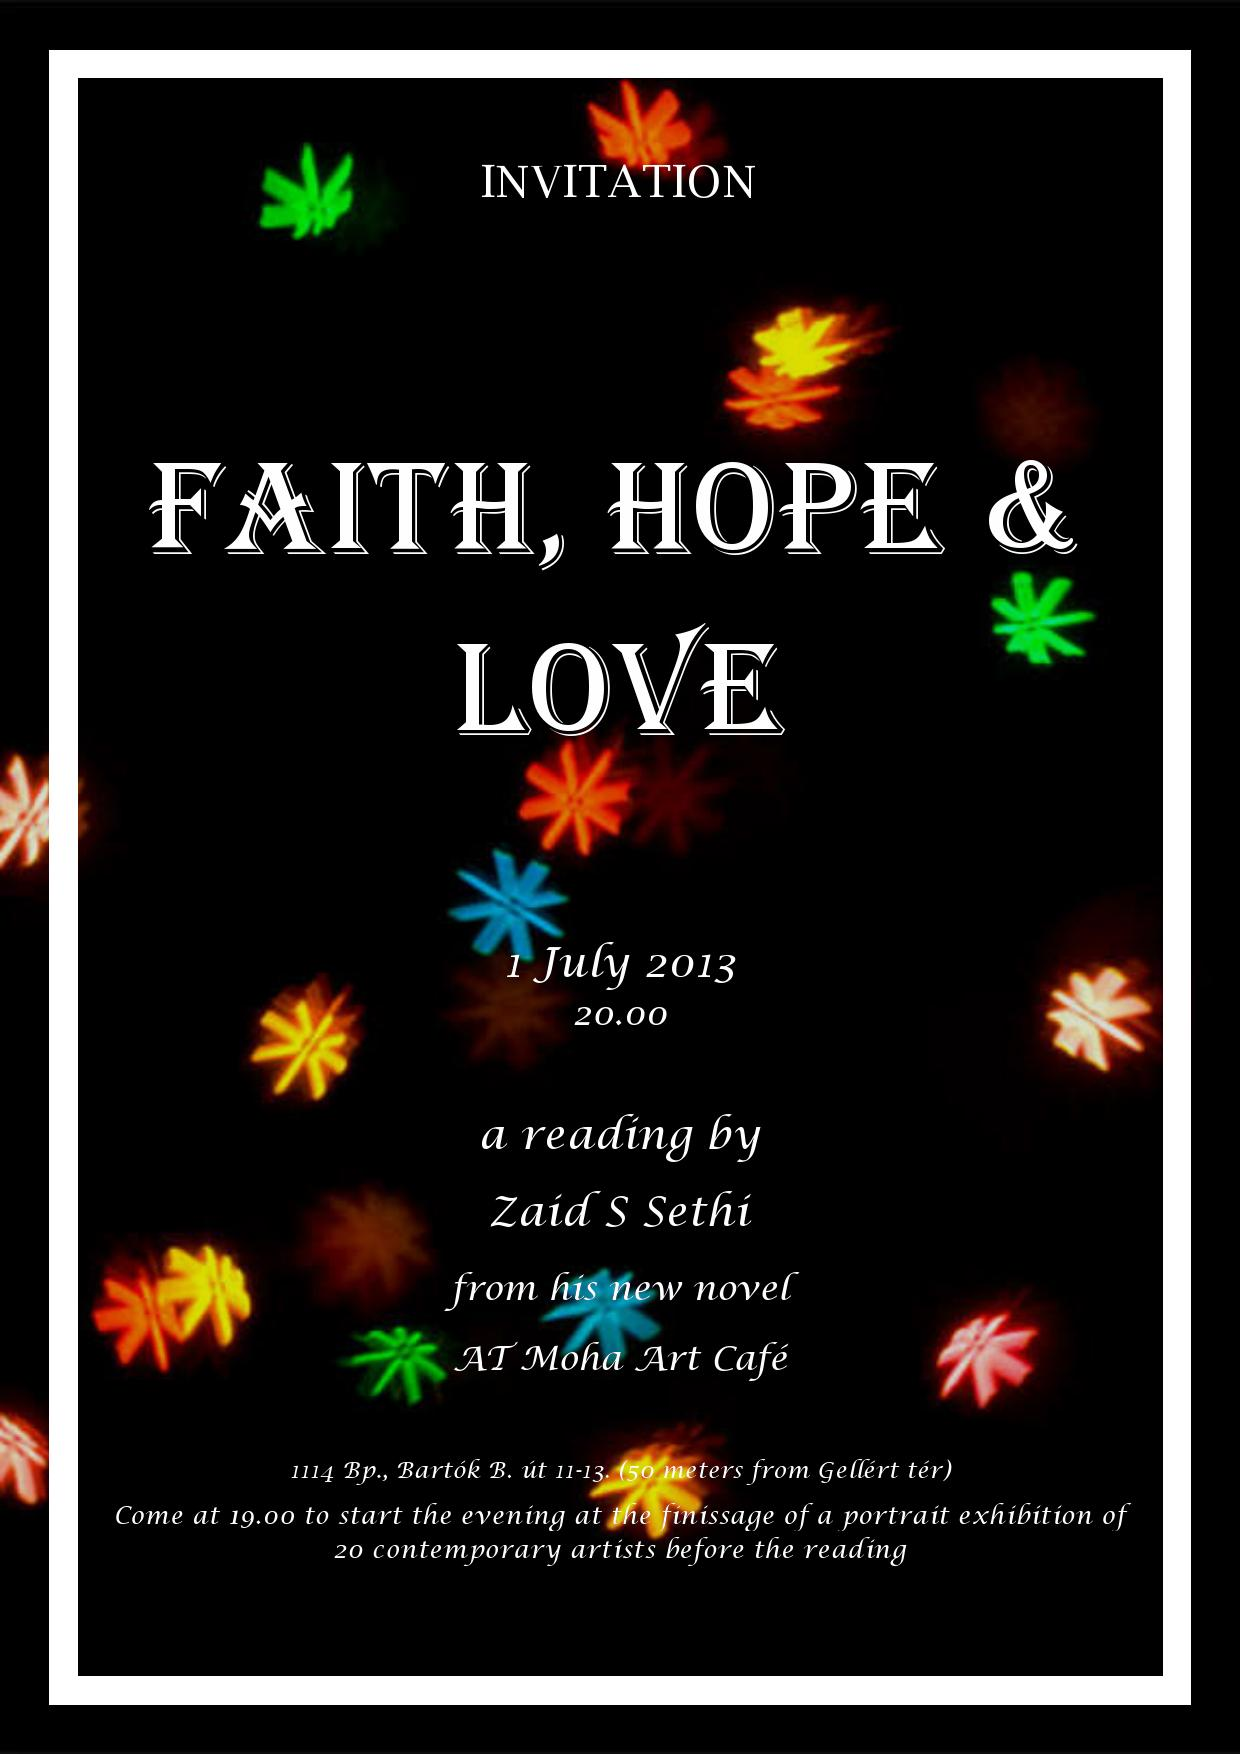 Invitation: 'Faith, Hope & Love' Book Reading, Moha Café Budapest, 1 July